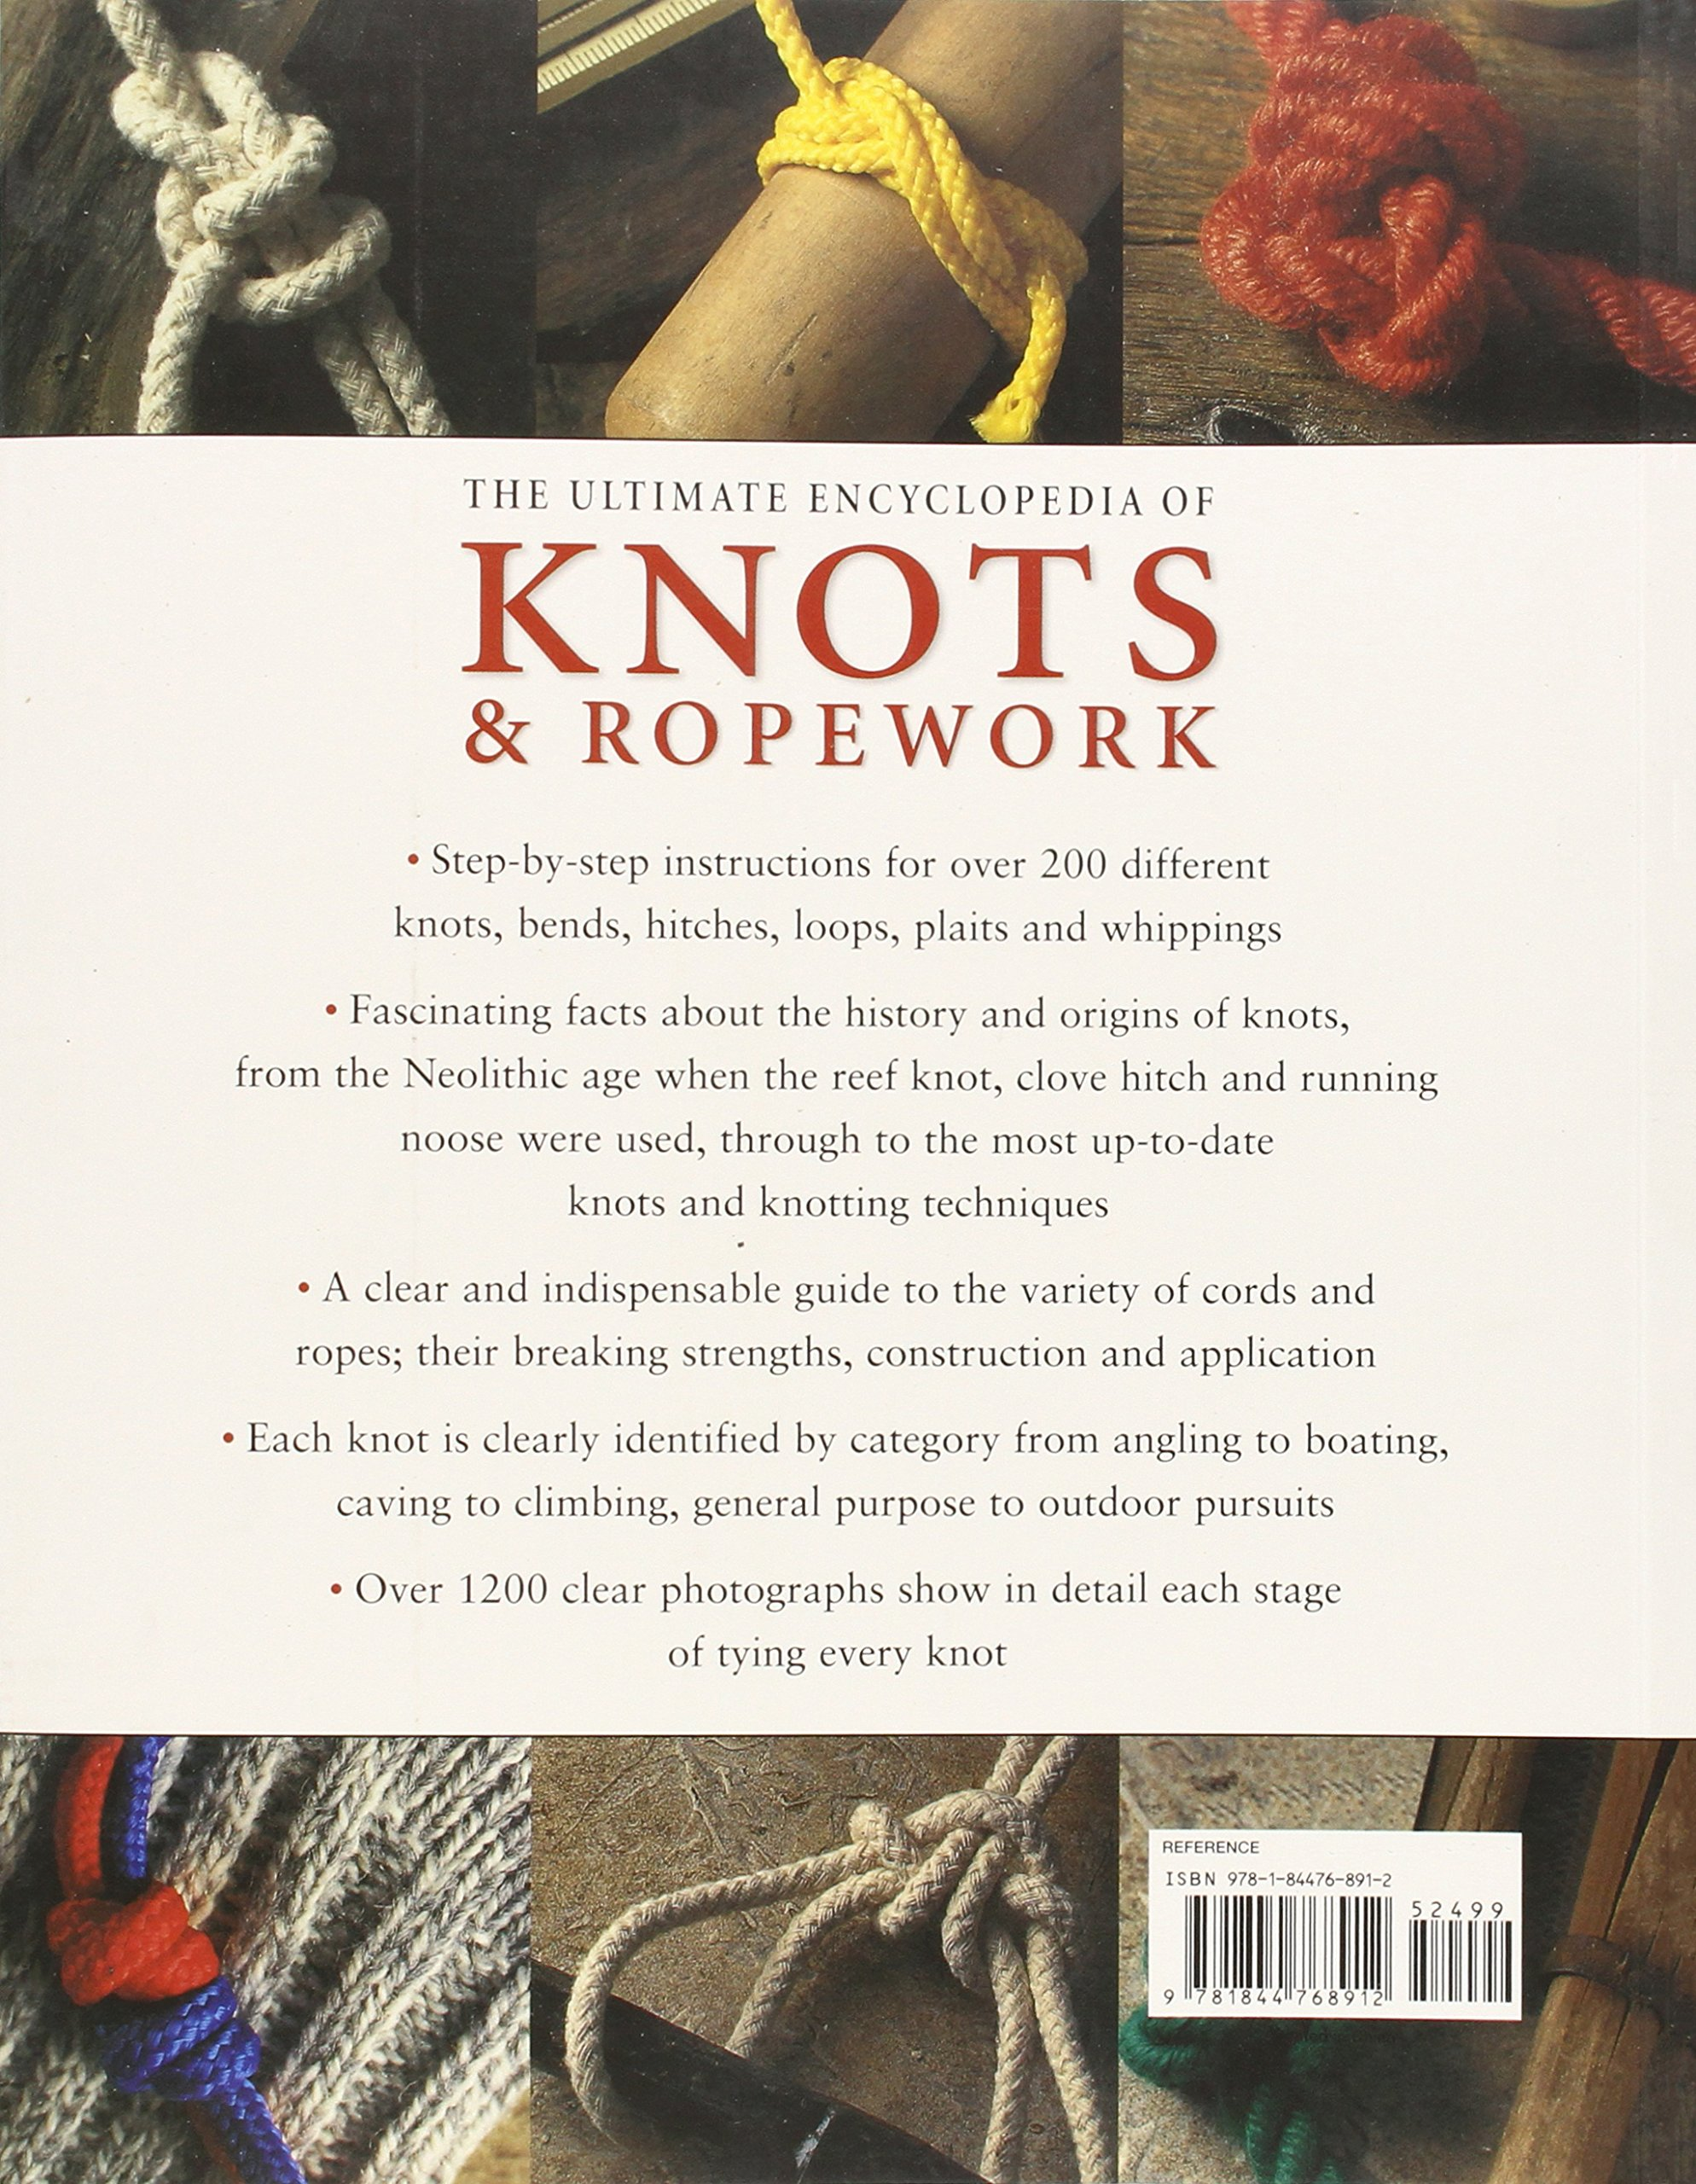 The Ultimate Encyclopedia Of Knots And Ropework Over 200 Tying Animation Bowline Knot Boating One Handed Shoelace Here S Techniques With Step By Photographs Geoffrey Budworth 9781844768912